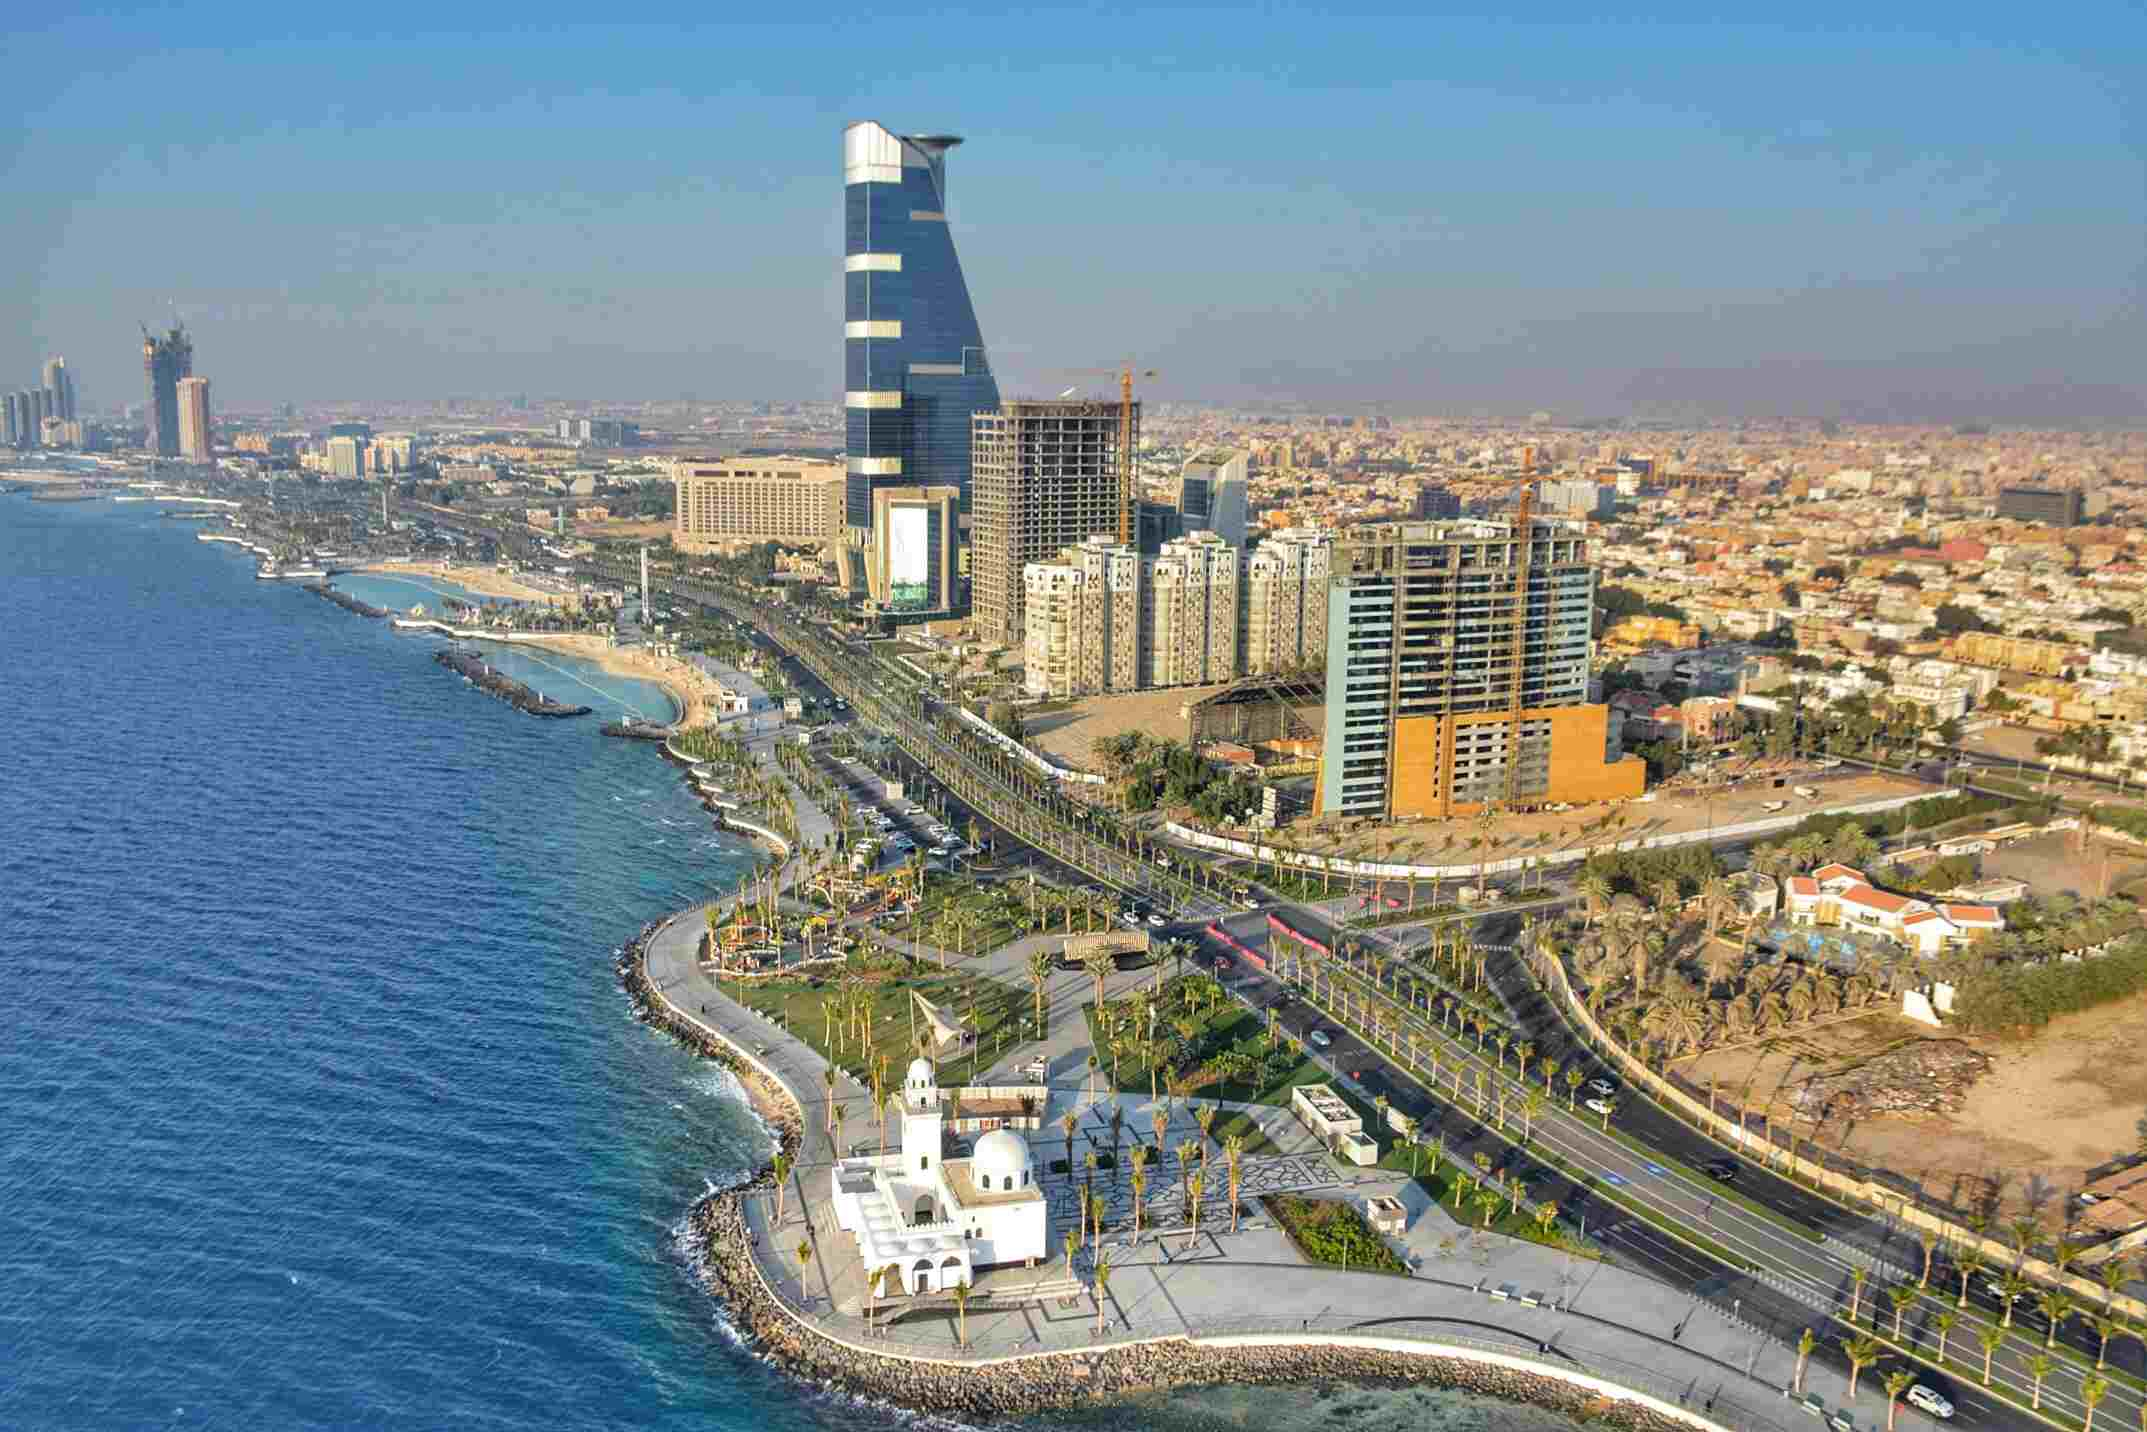 High Angle View Of Cityscape of Jeddah